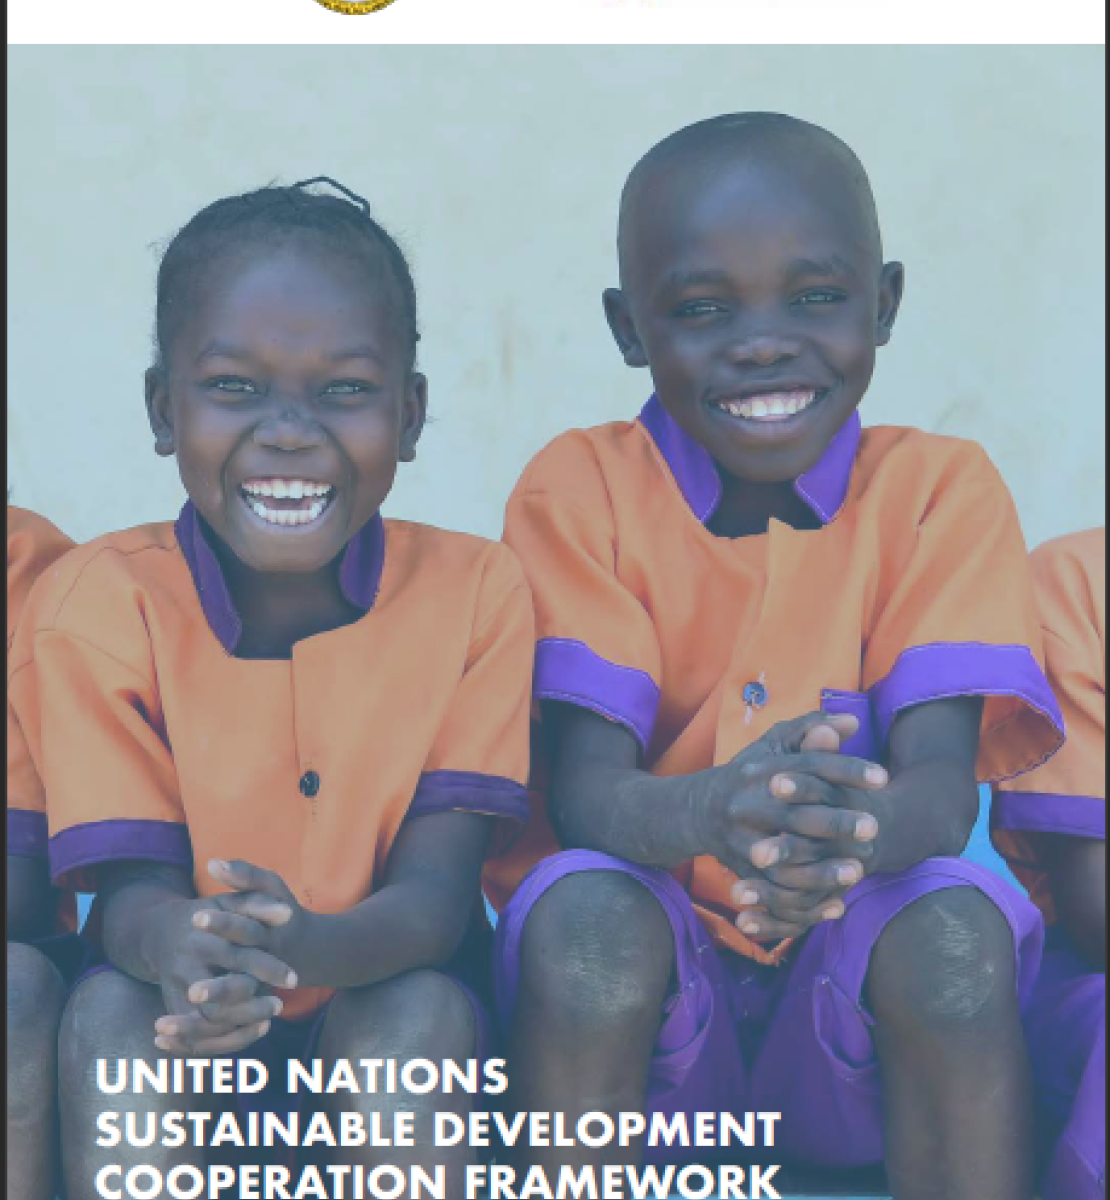 The cover shows two smiling children in school uniforms sit and face the camera with the title at the bottom of the page with the government and UNCT logos at the top.